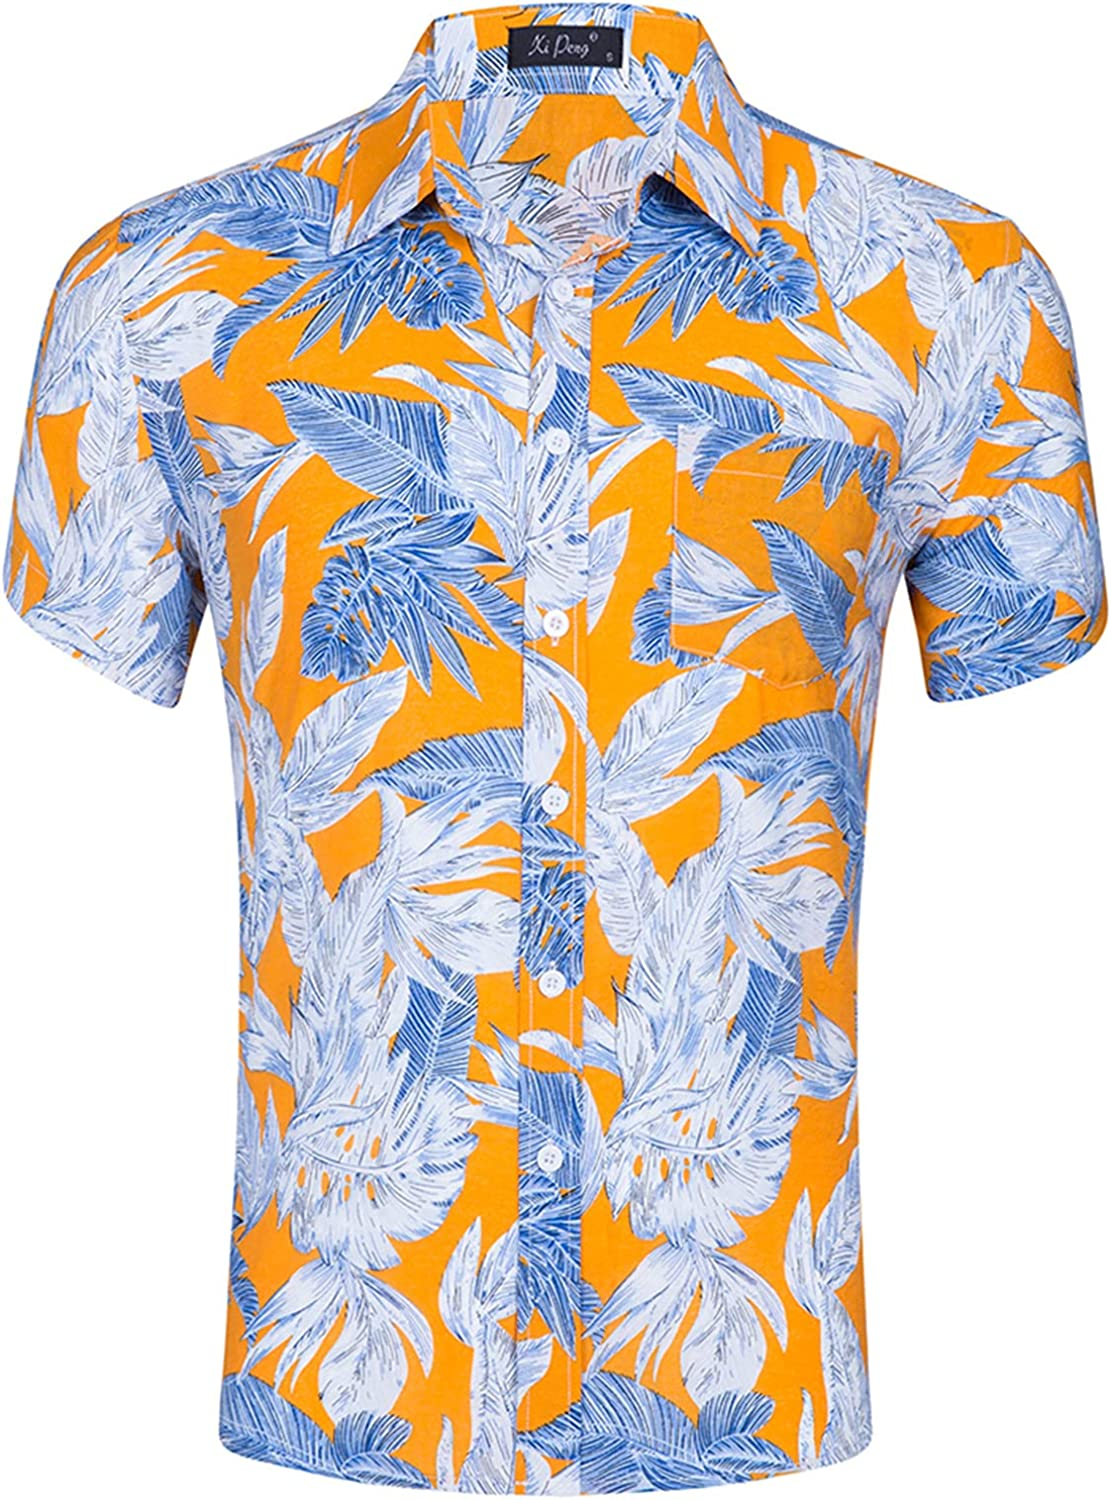 Men's 100% Cotton Short Sleeve Floral Printed Hawaiian Shirts Casual Button Down Flower Beach Party Holiday